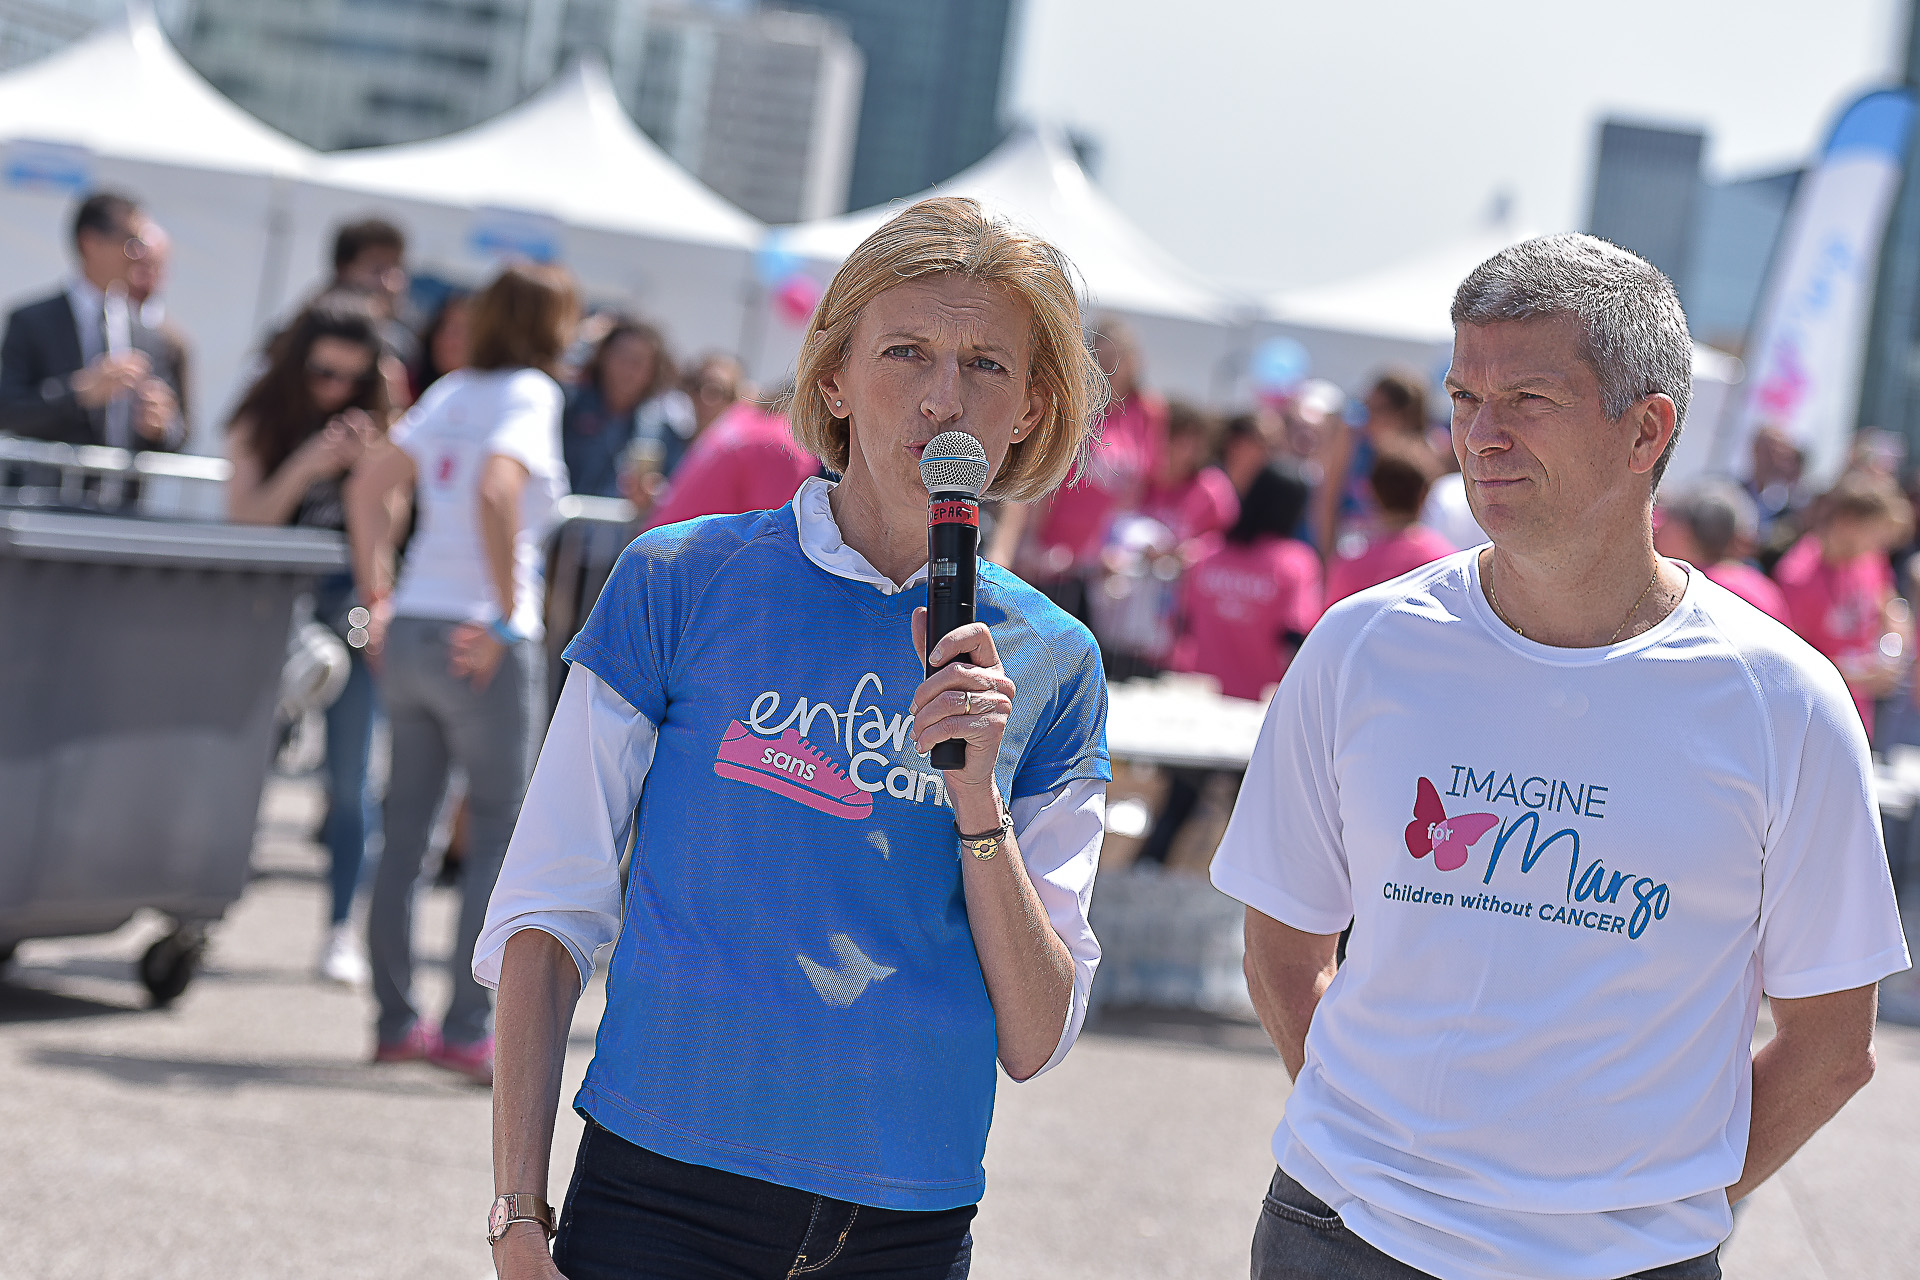 photographe-reportage-course-contre-cancer-imagine-for-margo